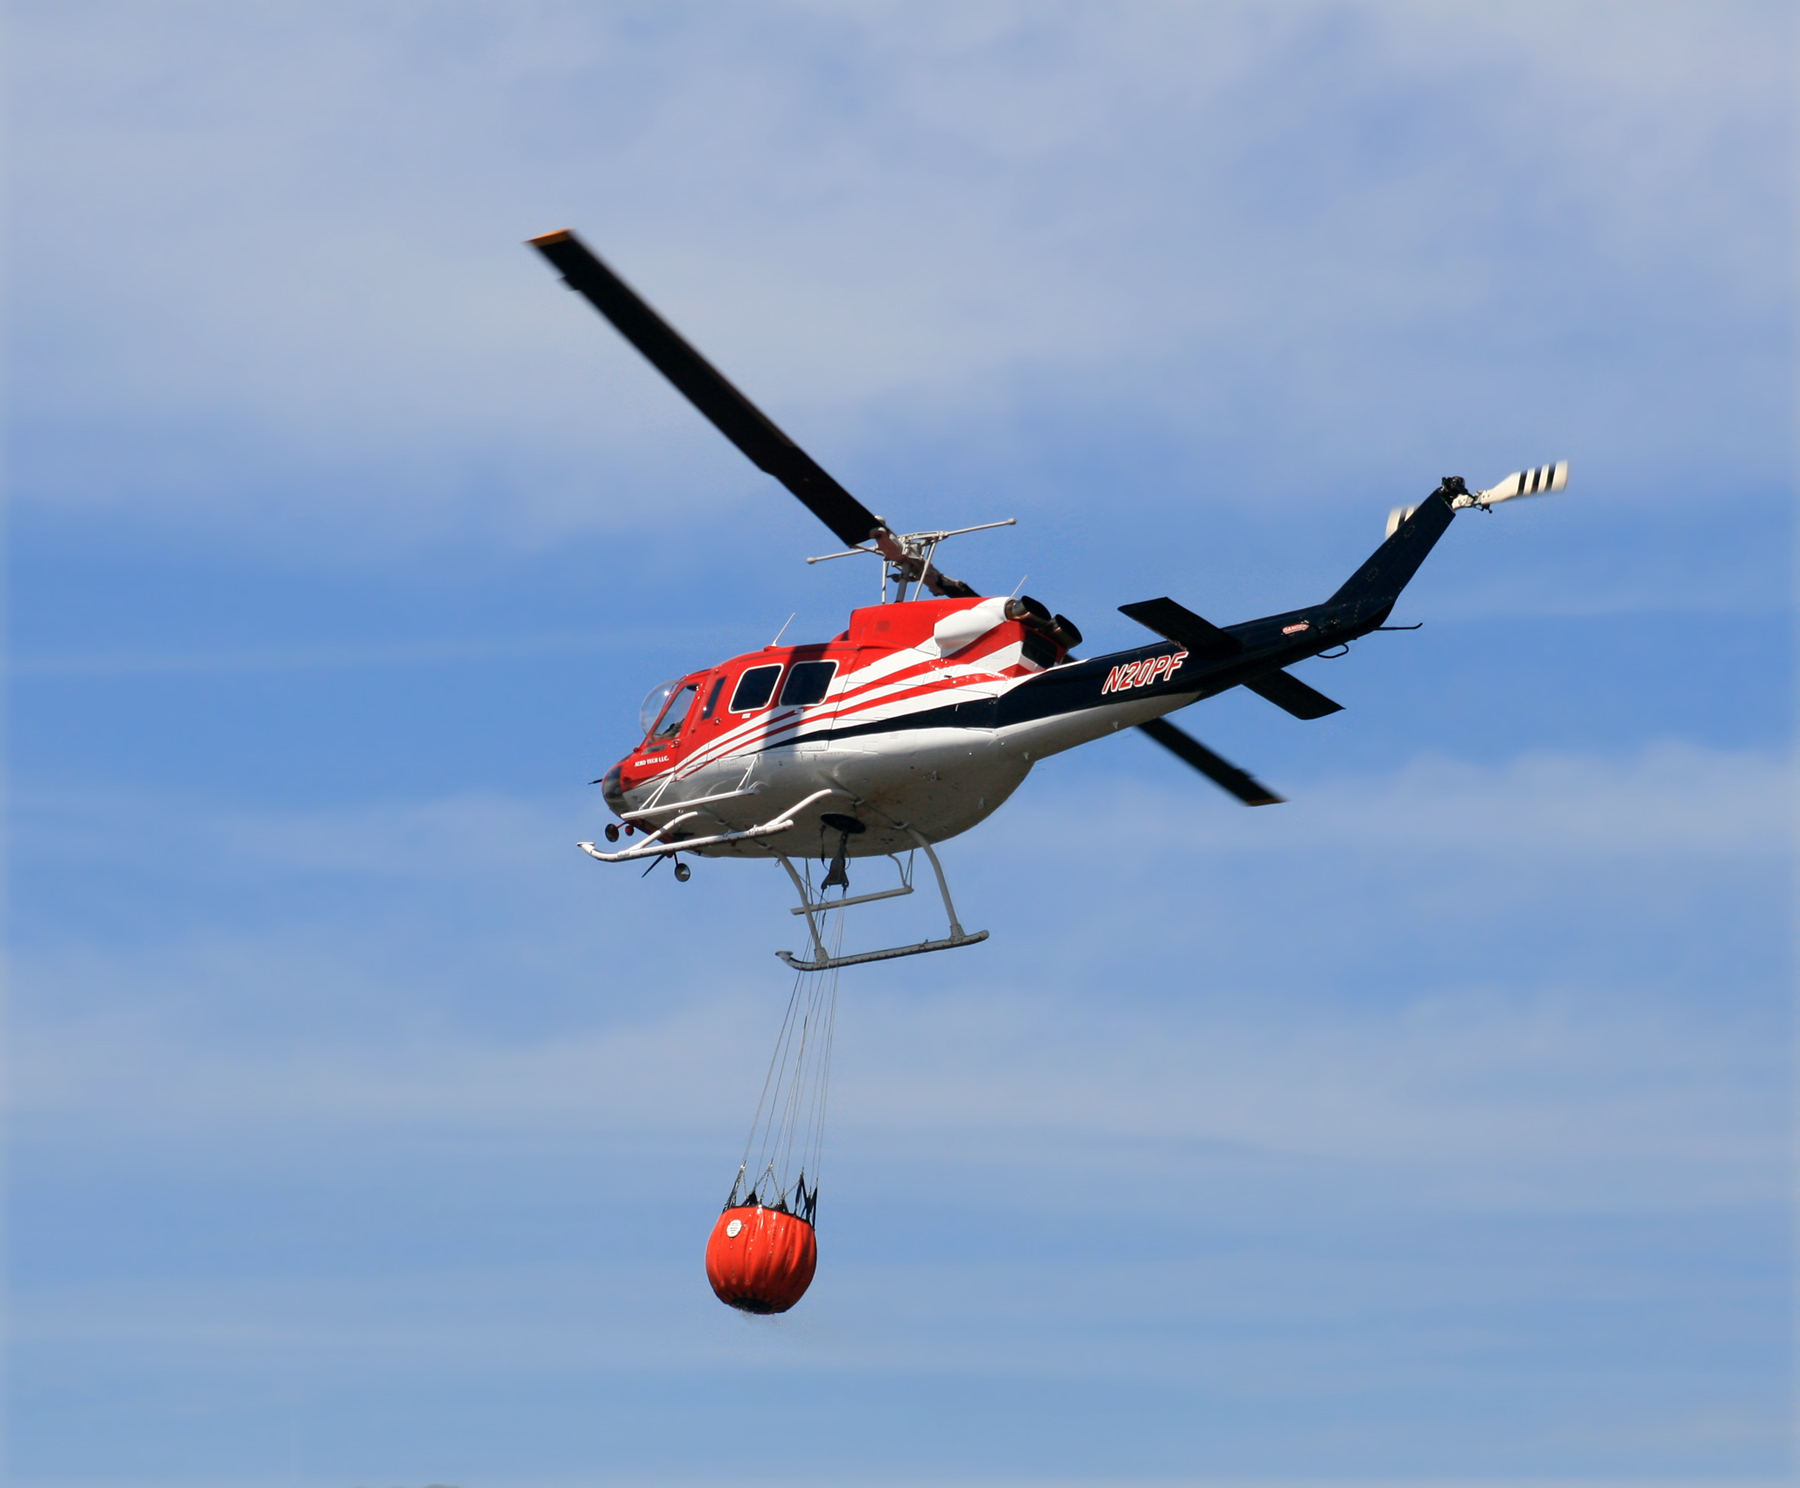 bell helicopter 222 with File A Fire Helicopter With Helicopter Bucket 222 Copy on Watch together with Watch besides File Bell 407 Helicopter Interior Baltimore Helicopter Services N407F further Airwolf Bell 222 Helicopter furthermore Watch.